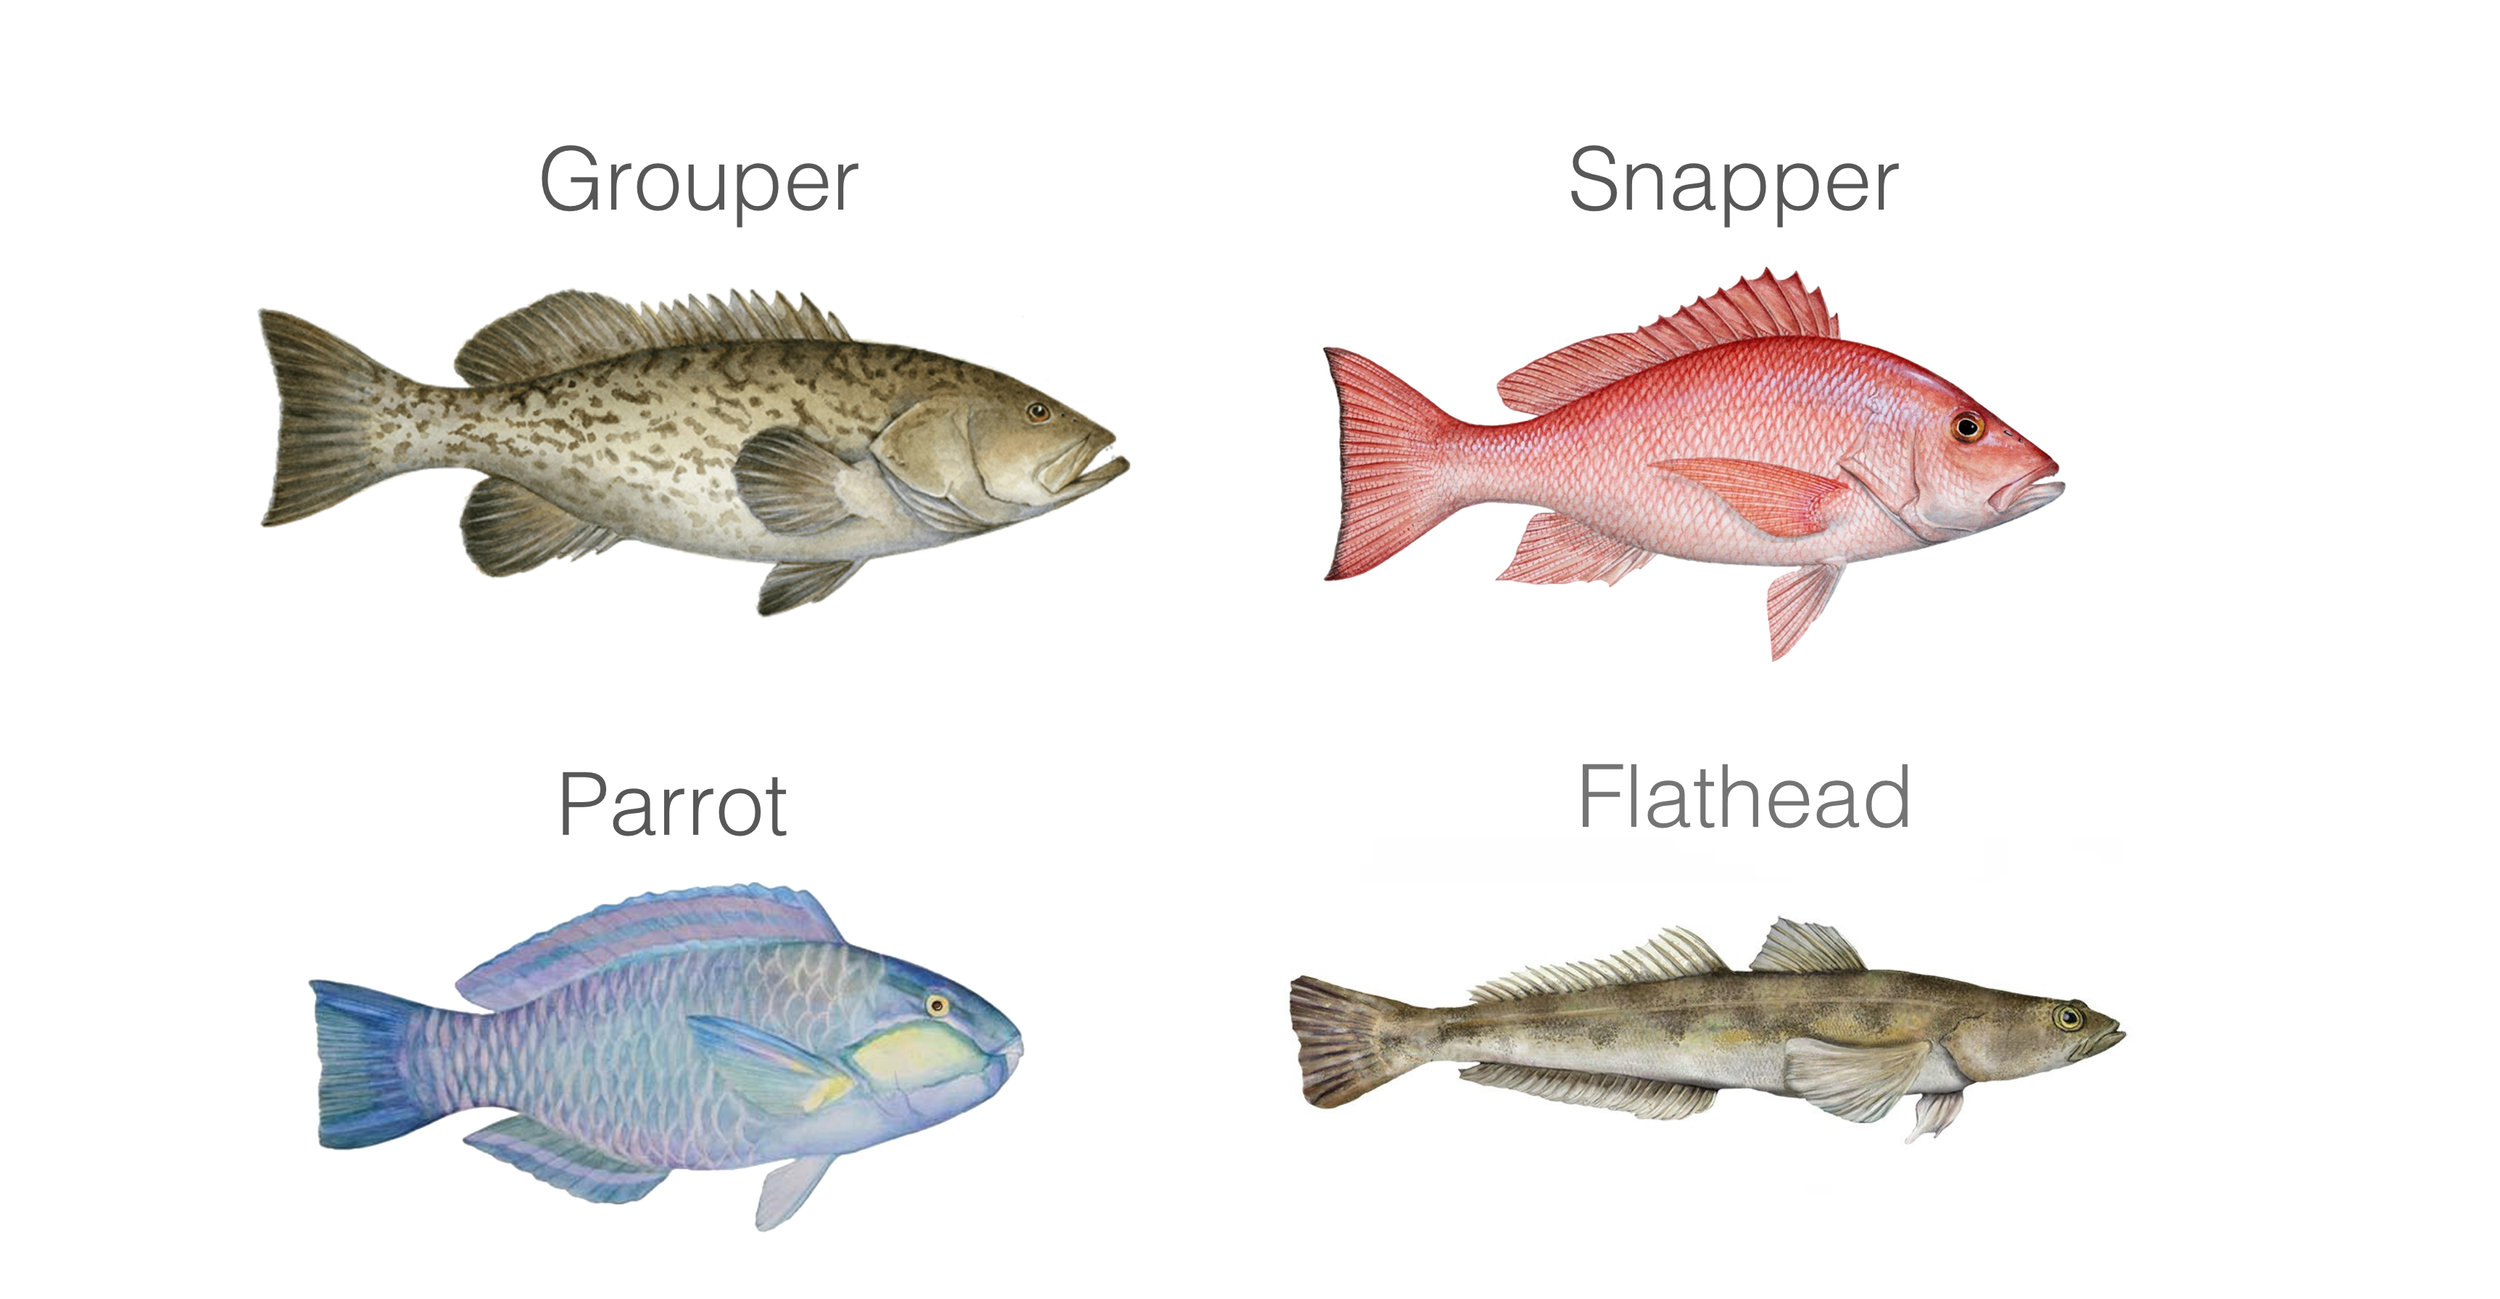 Target Fish Species in Singapore East Coast waters, Grouper, Snapper, Parrot, Flatheads fish